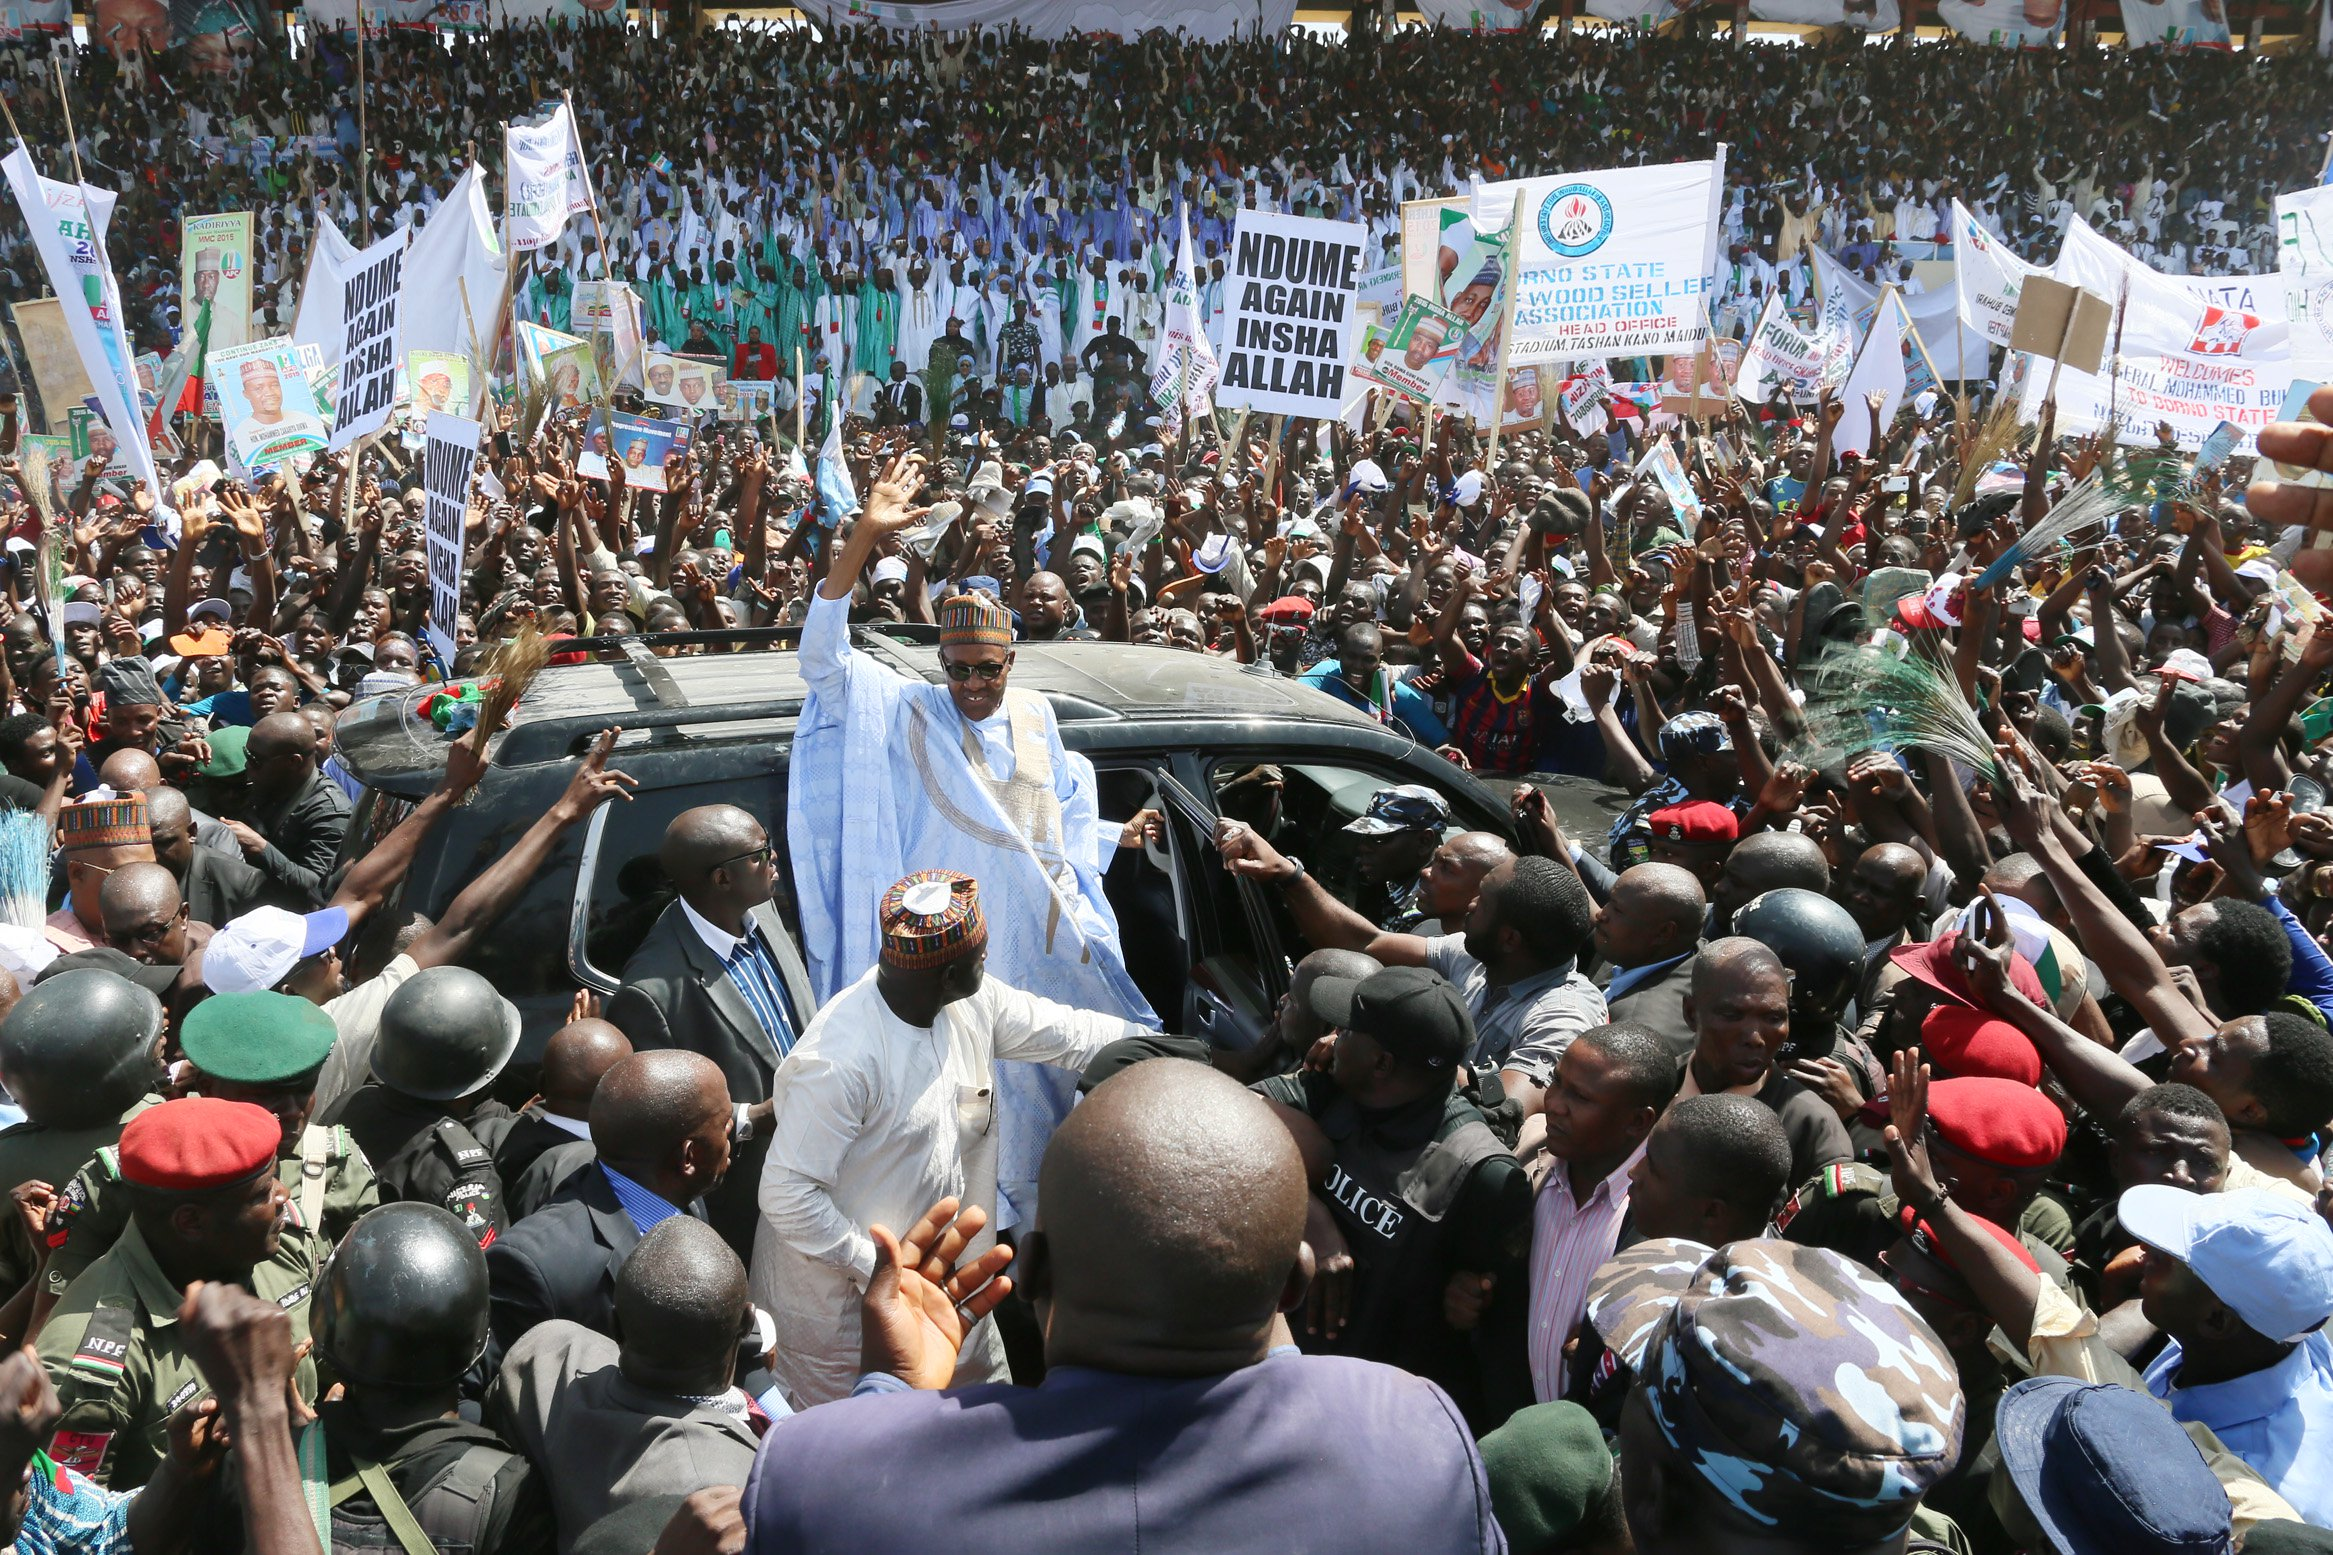 OPINION: Millions of Buhari's extreme supporters do not have reason